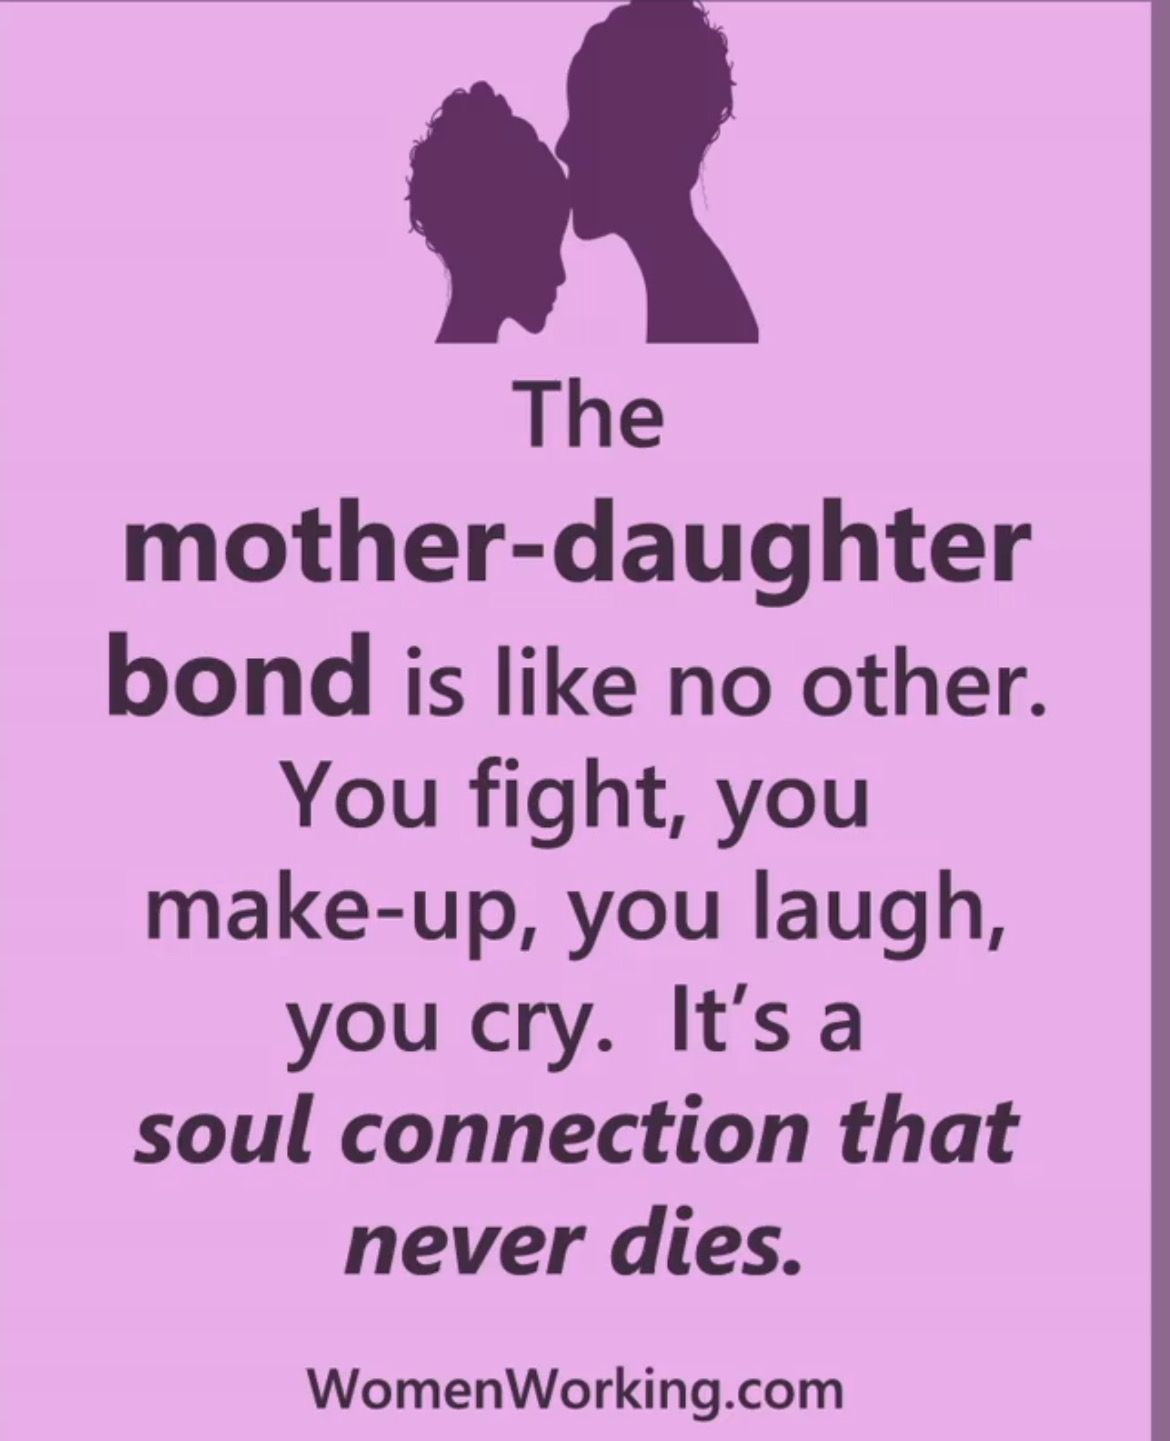 Pin By Cindy Ries-Snyder On A Mother's Love